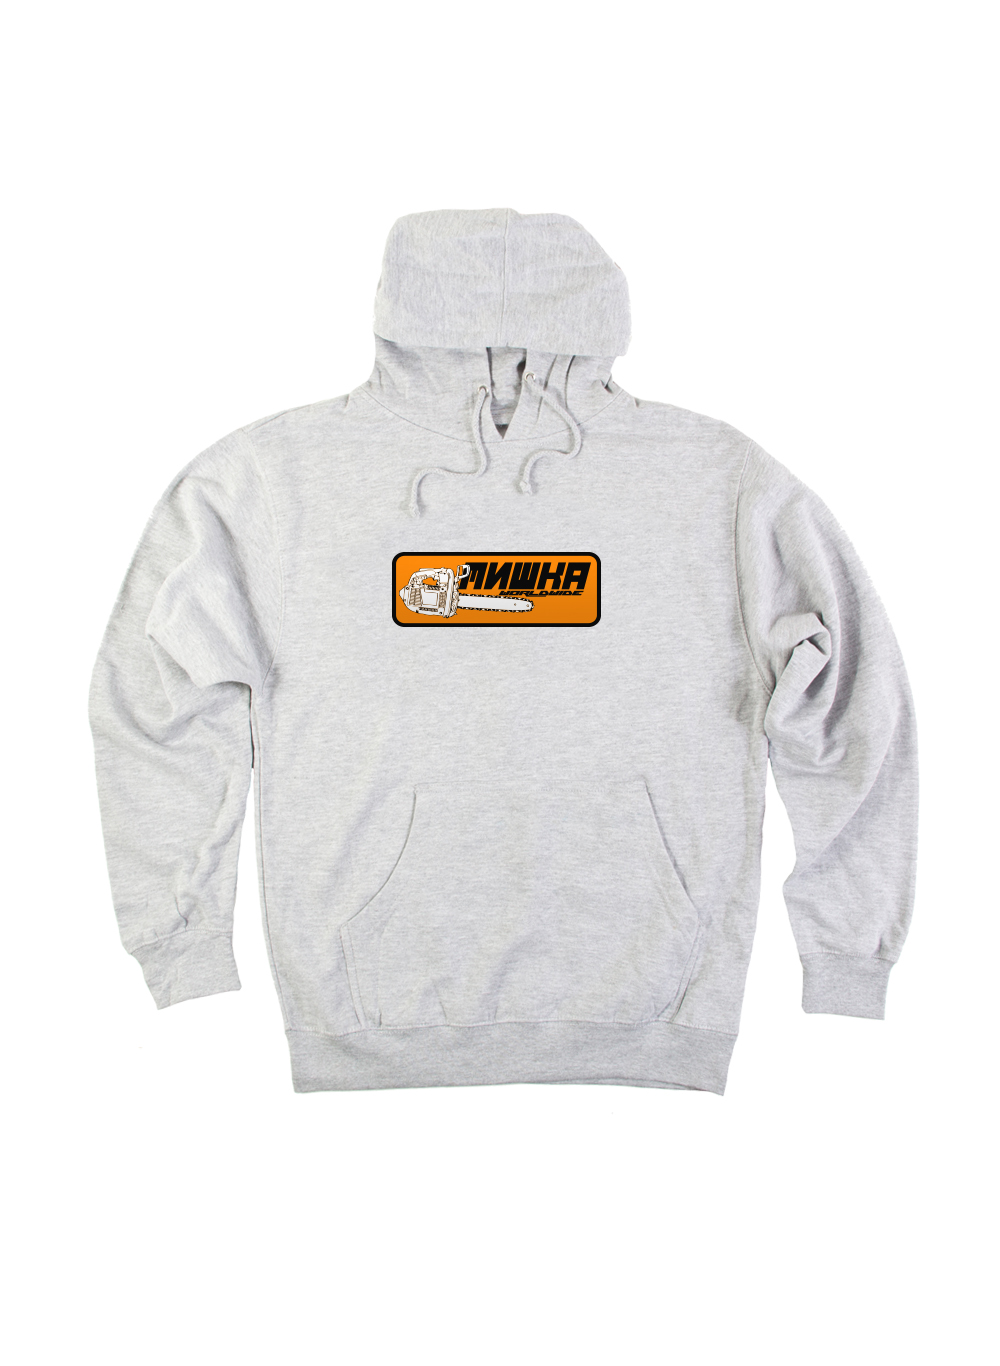 Cyrillic Chainsaw Pullover Hoodie